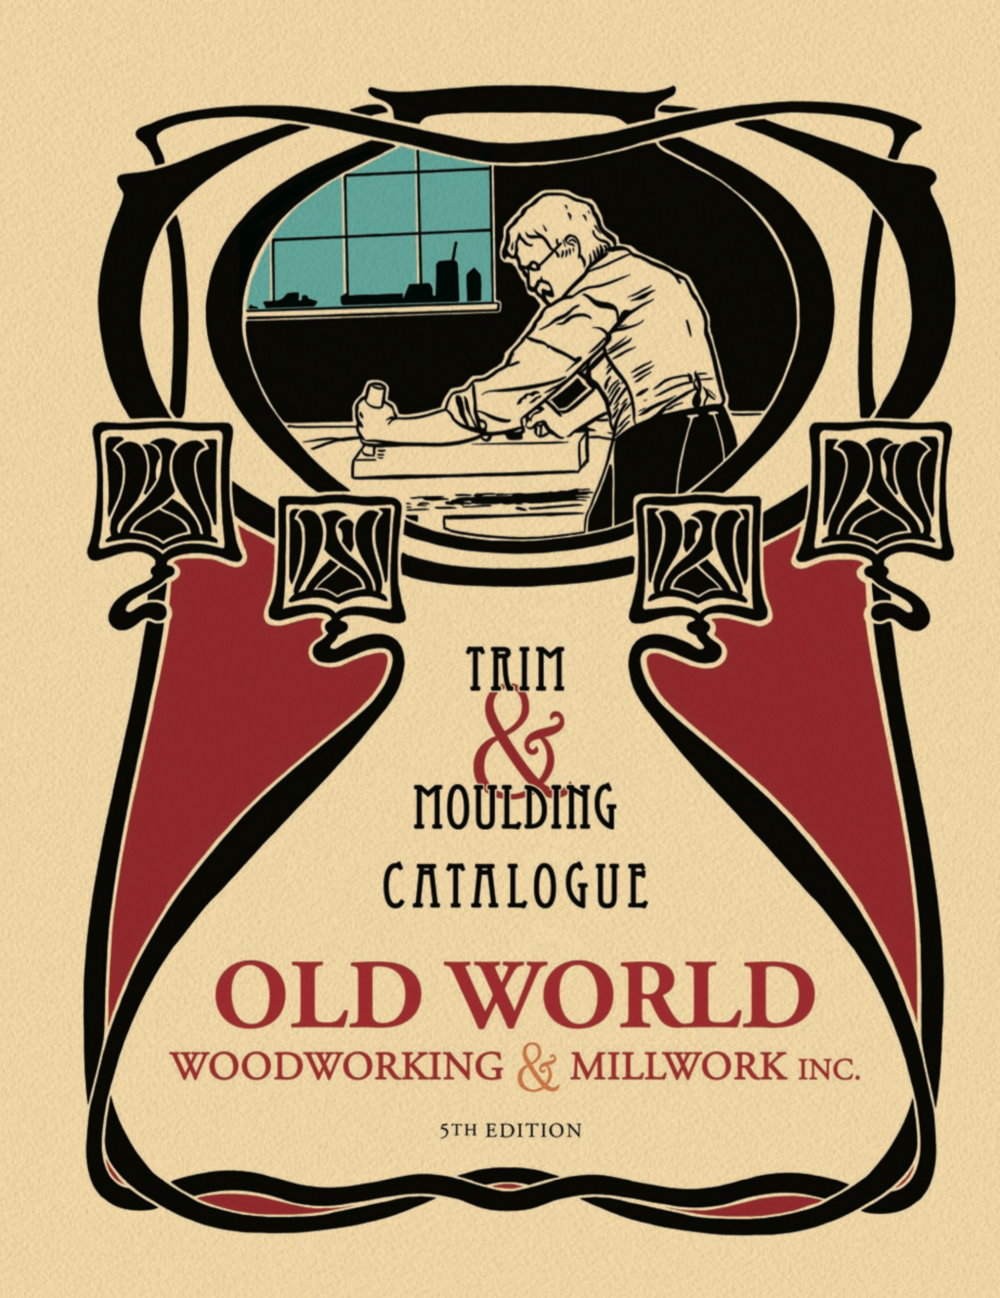 OWW millwork catalogue cover.png